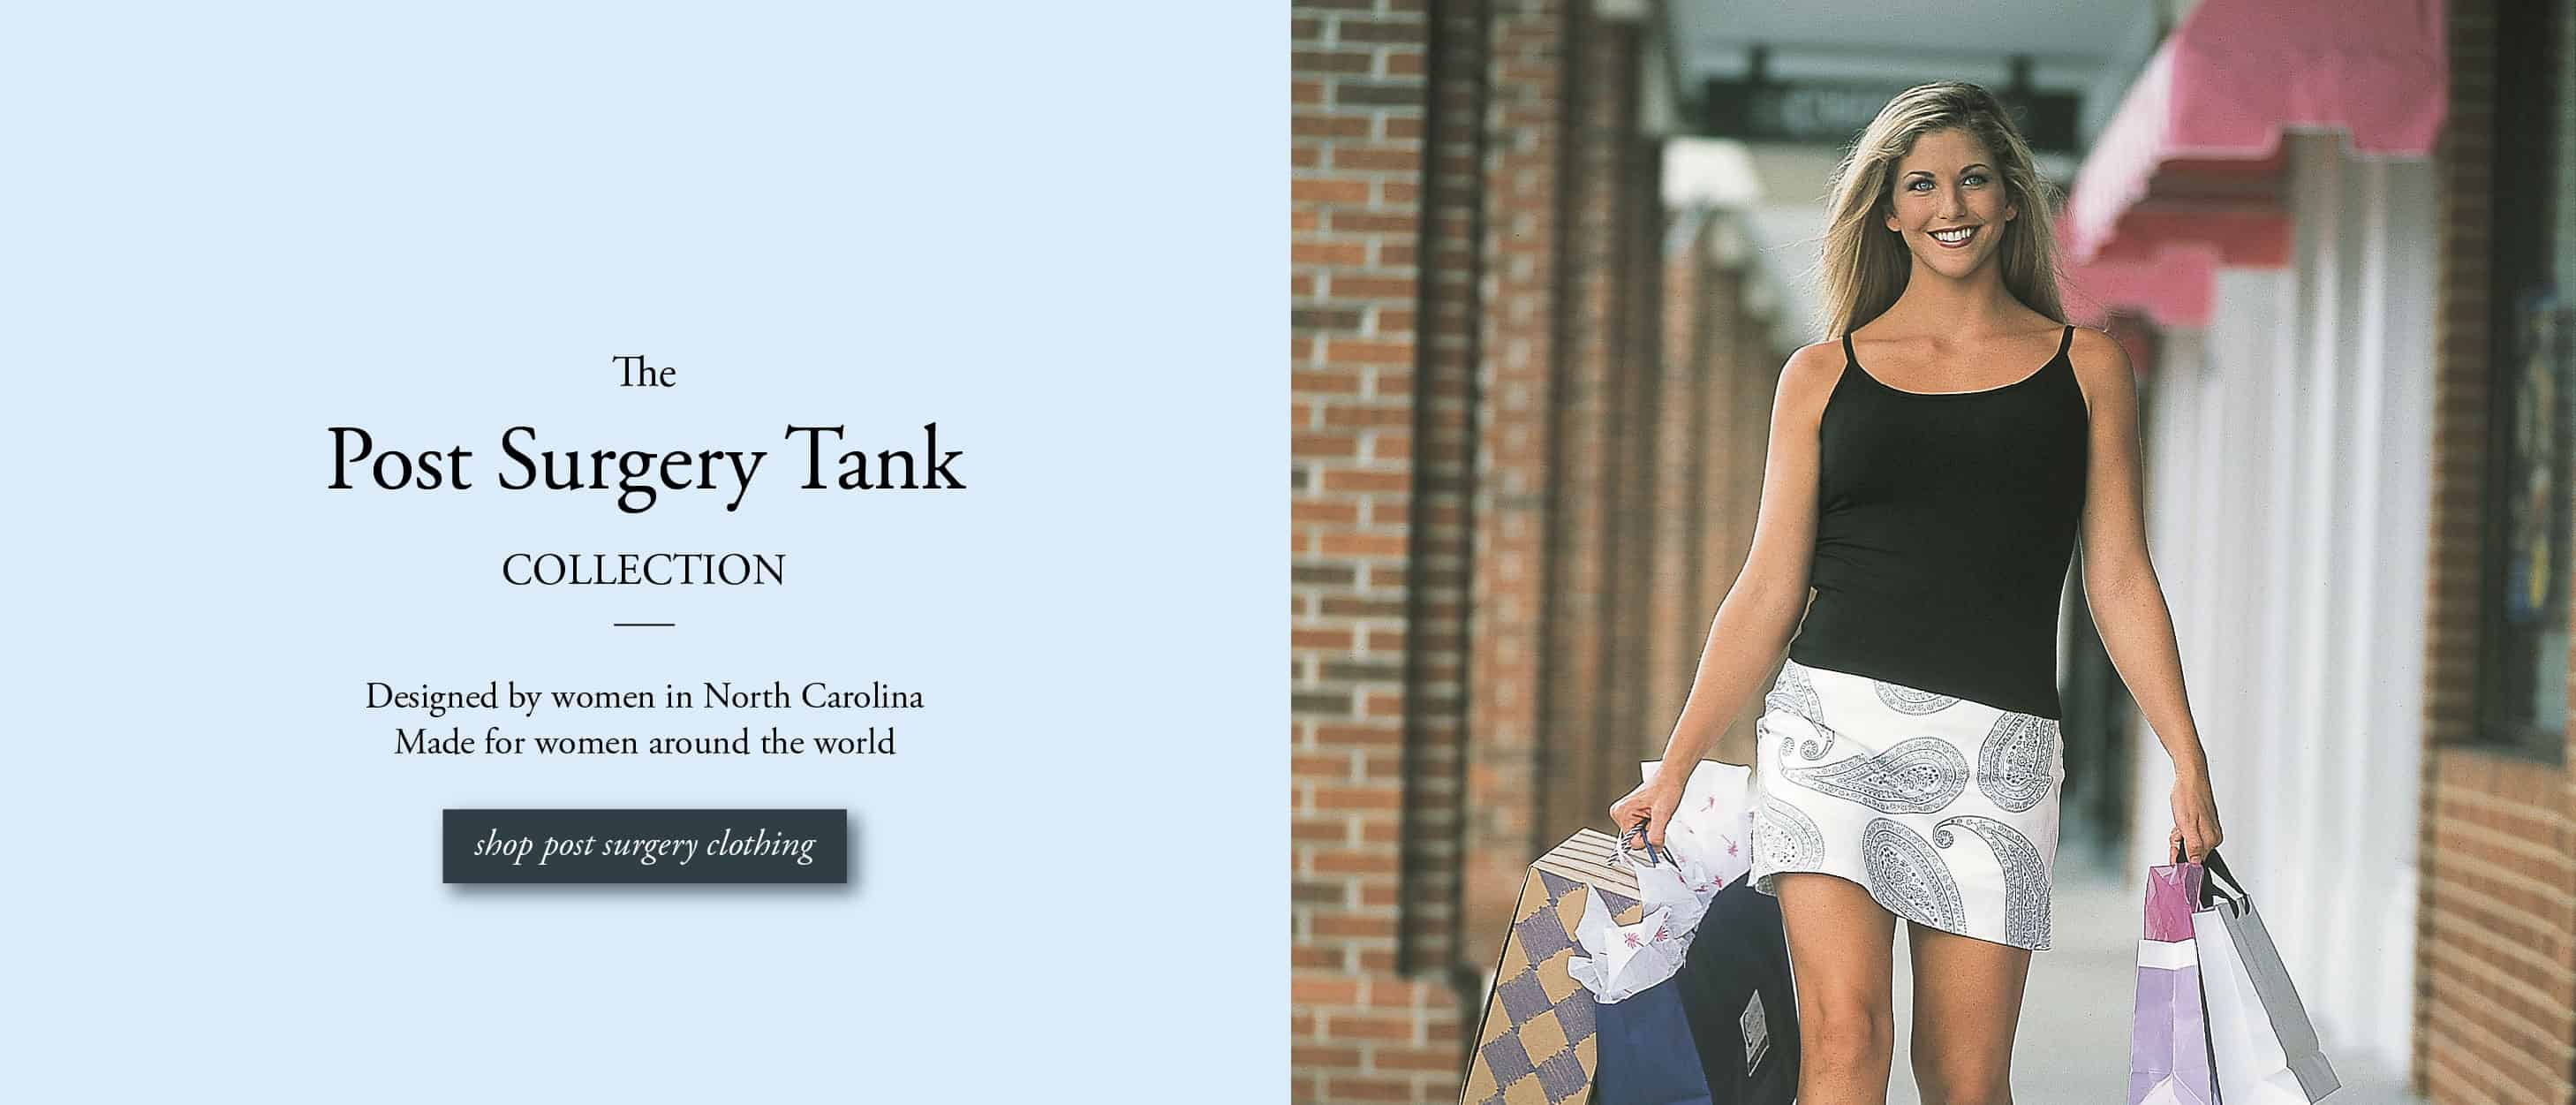 Post Surgery Tank in Breast Cancer post-surgery clothing